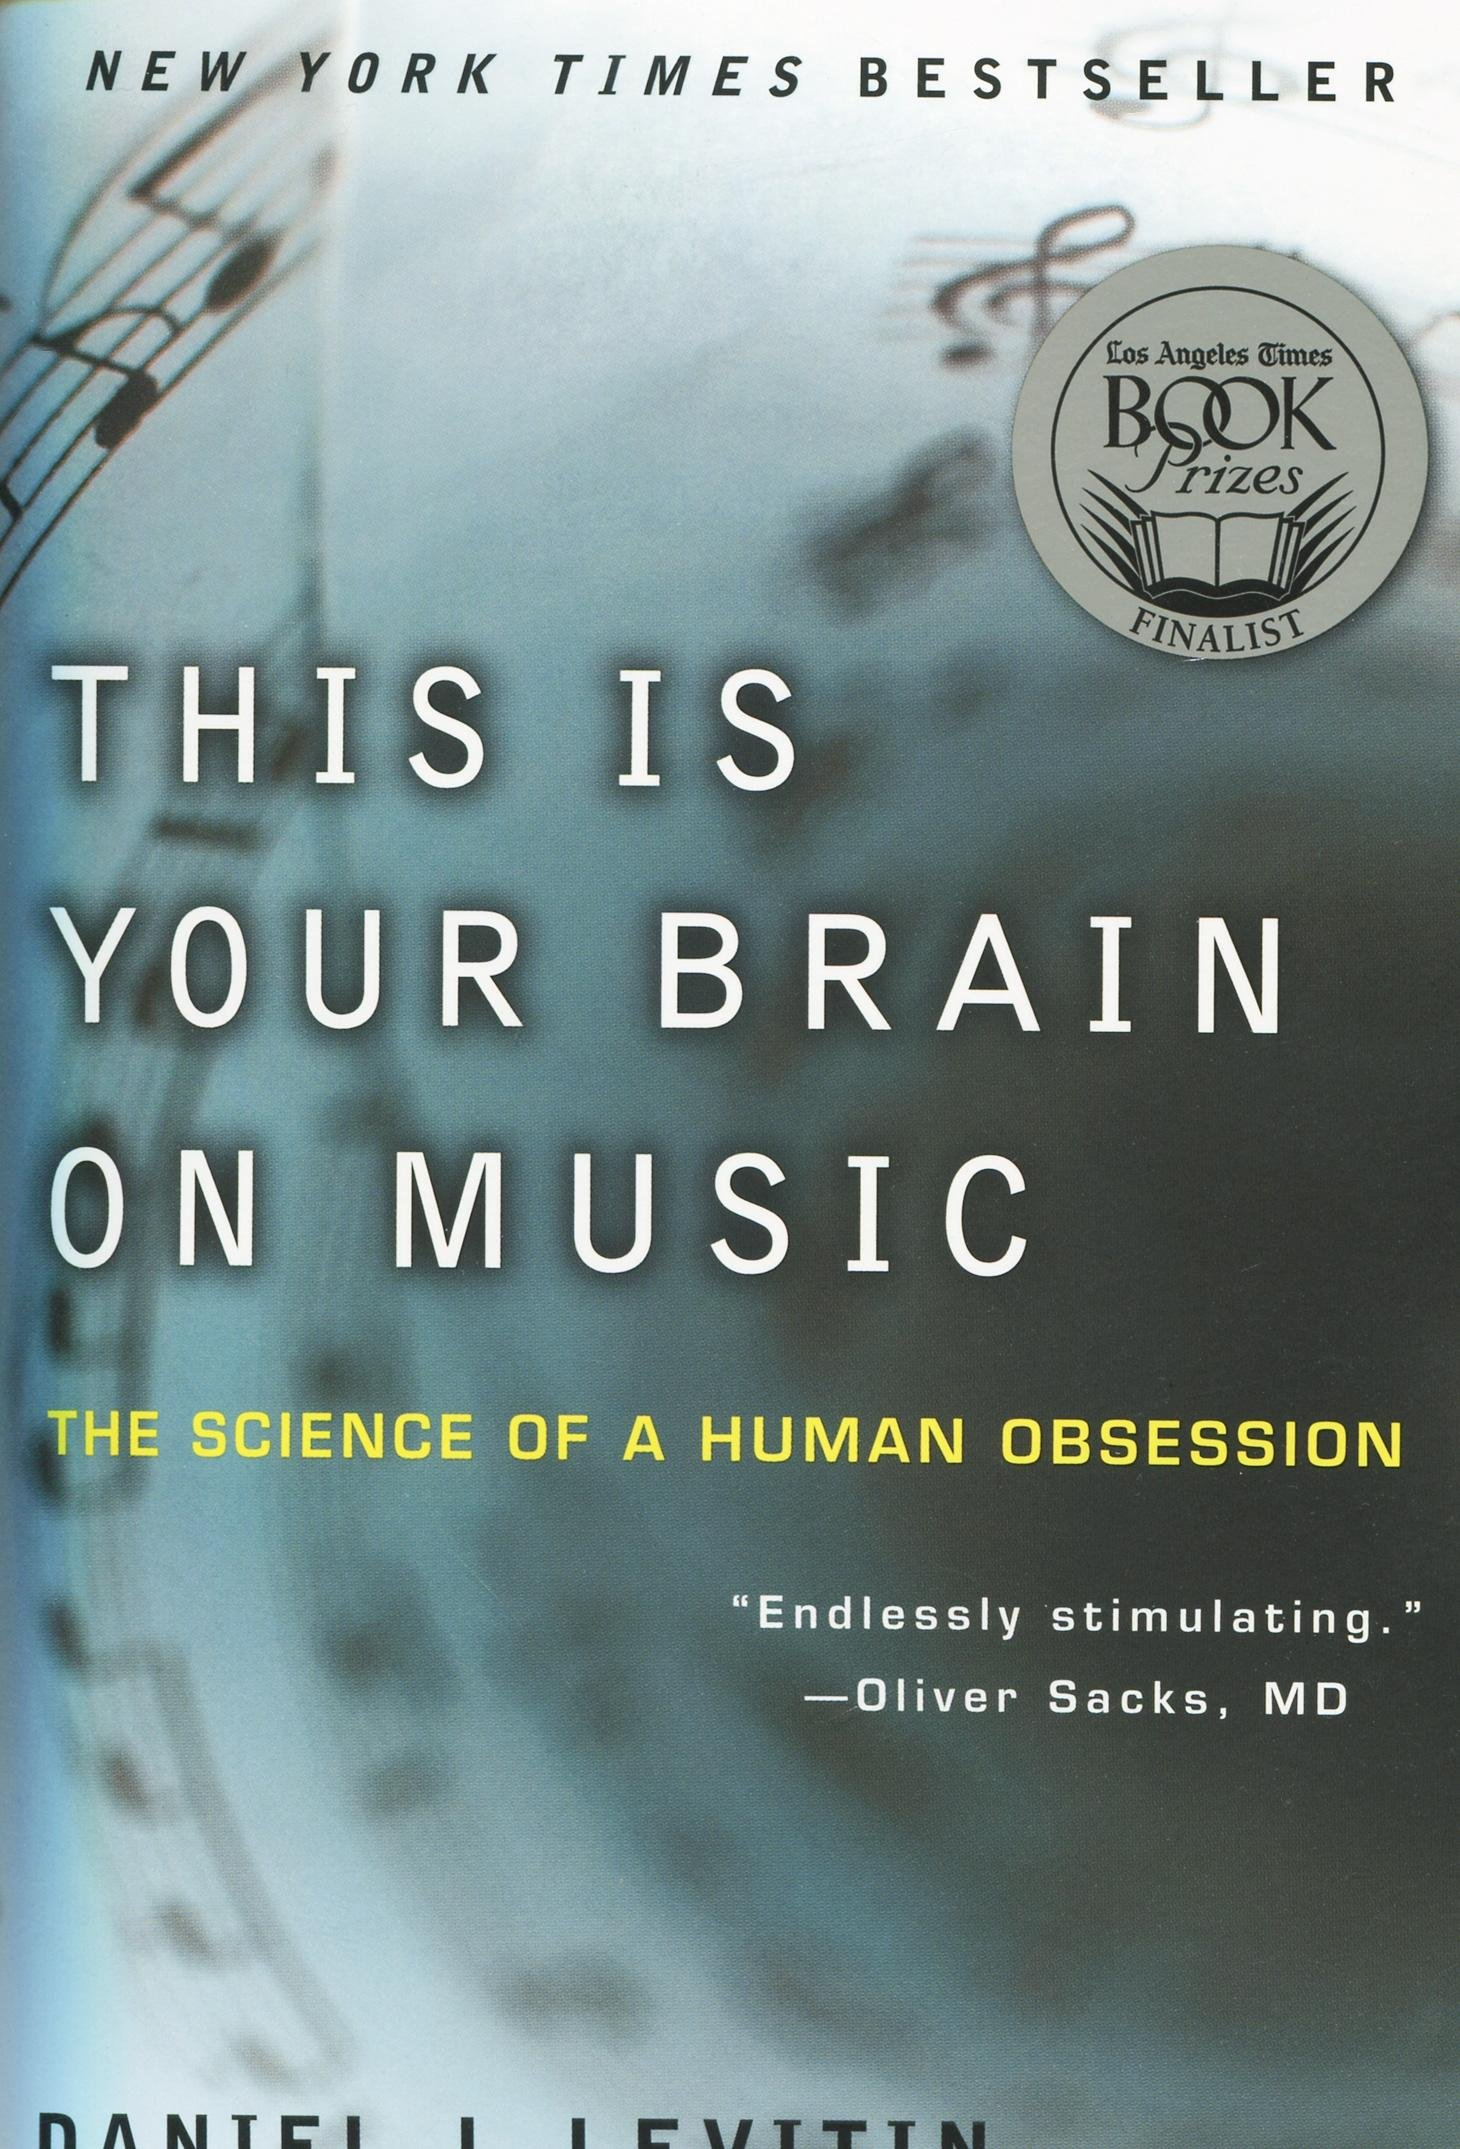 Download This Is Your Brain On Music The Science Of A Human Obsession By Daniel J Levitin